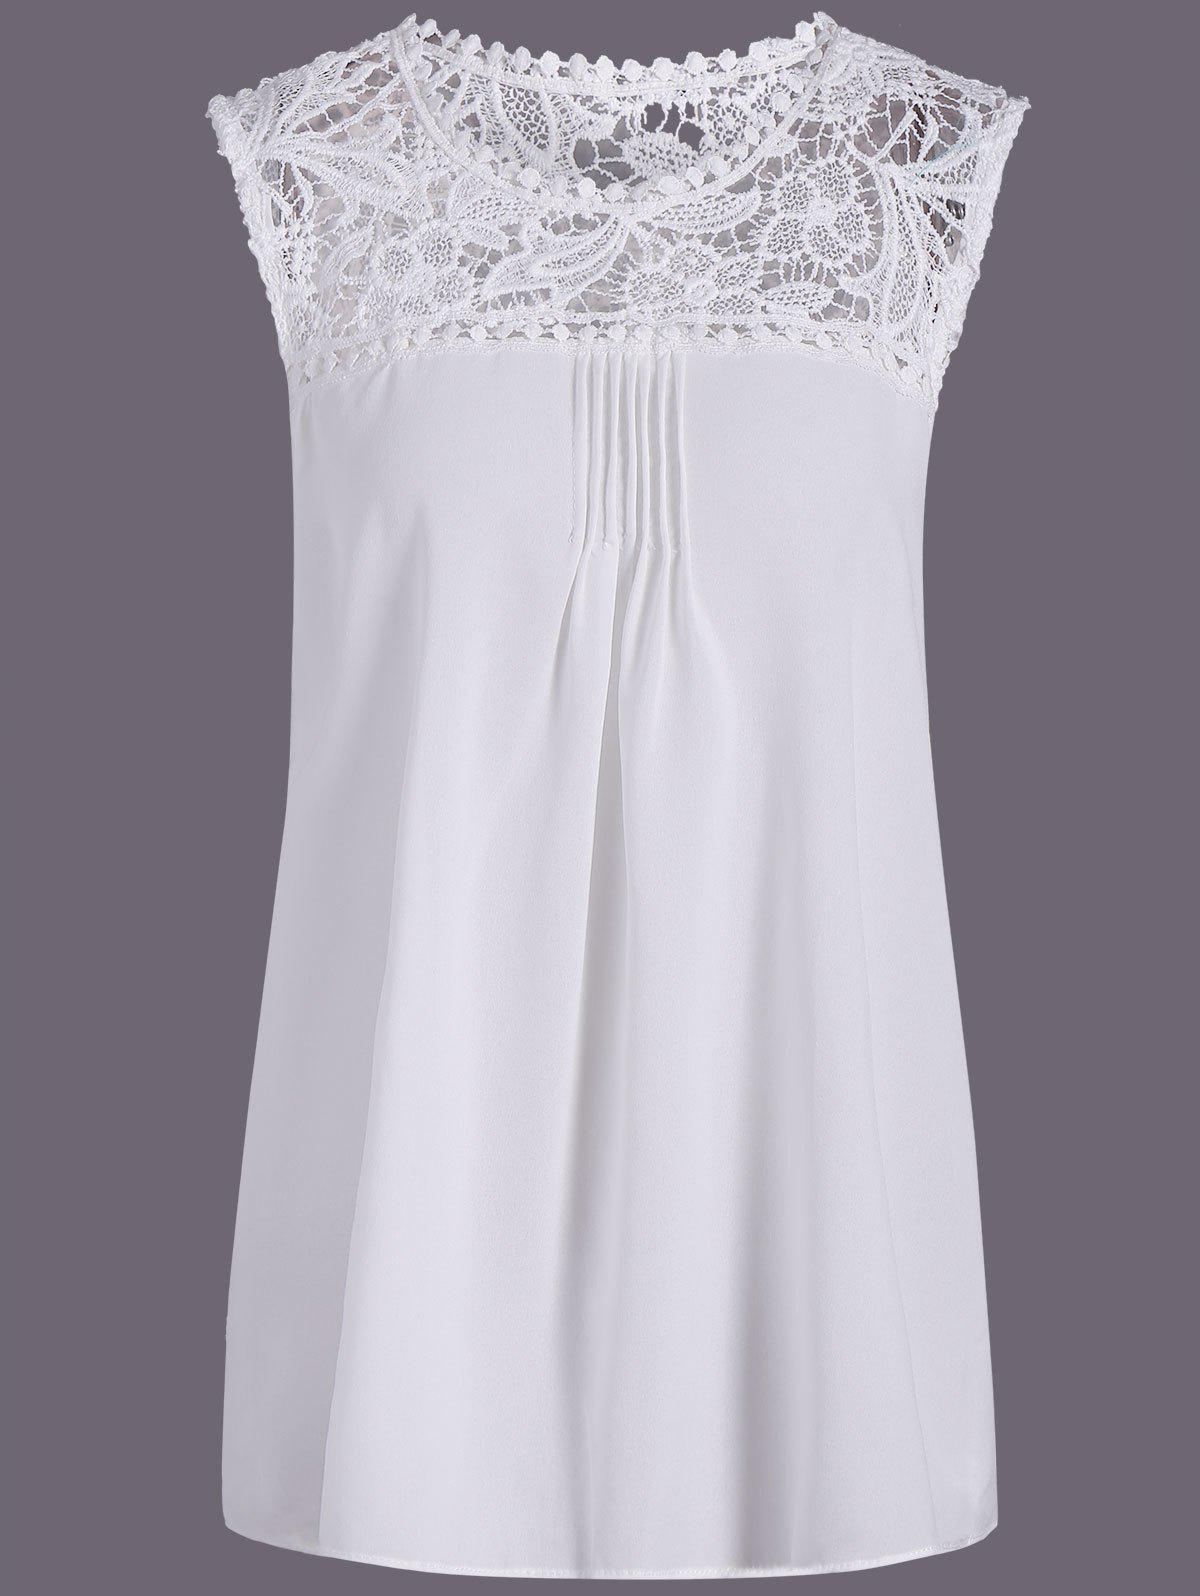 Openwork Lace Spliced Shirred Tank Top - WHITE S